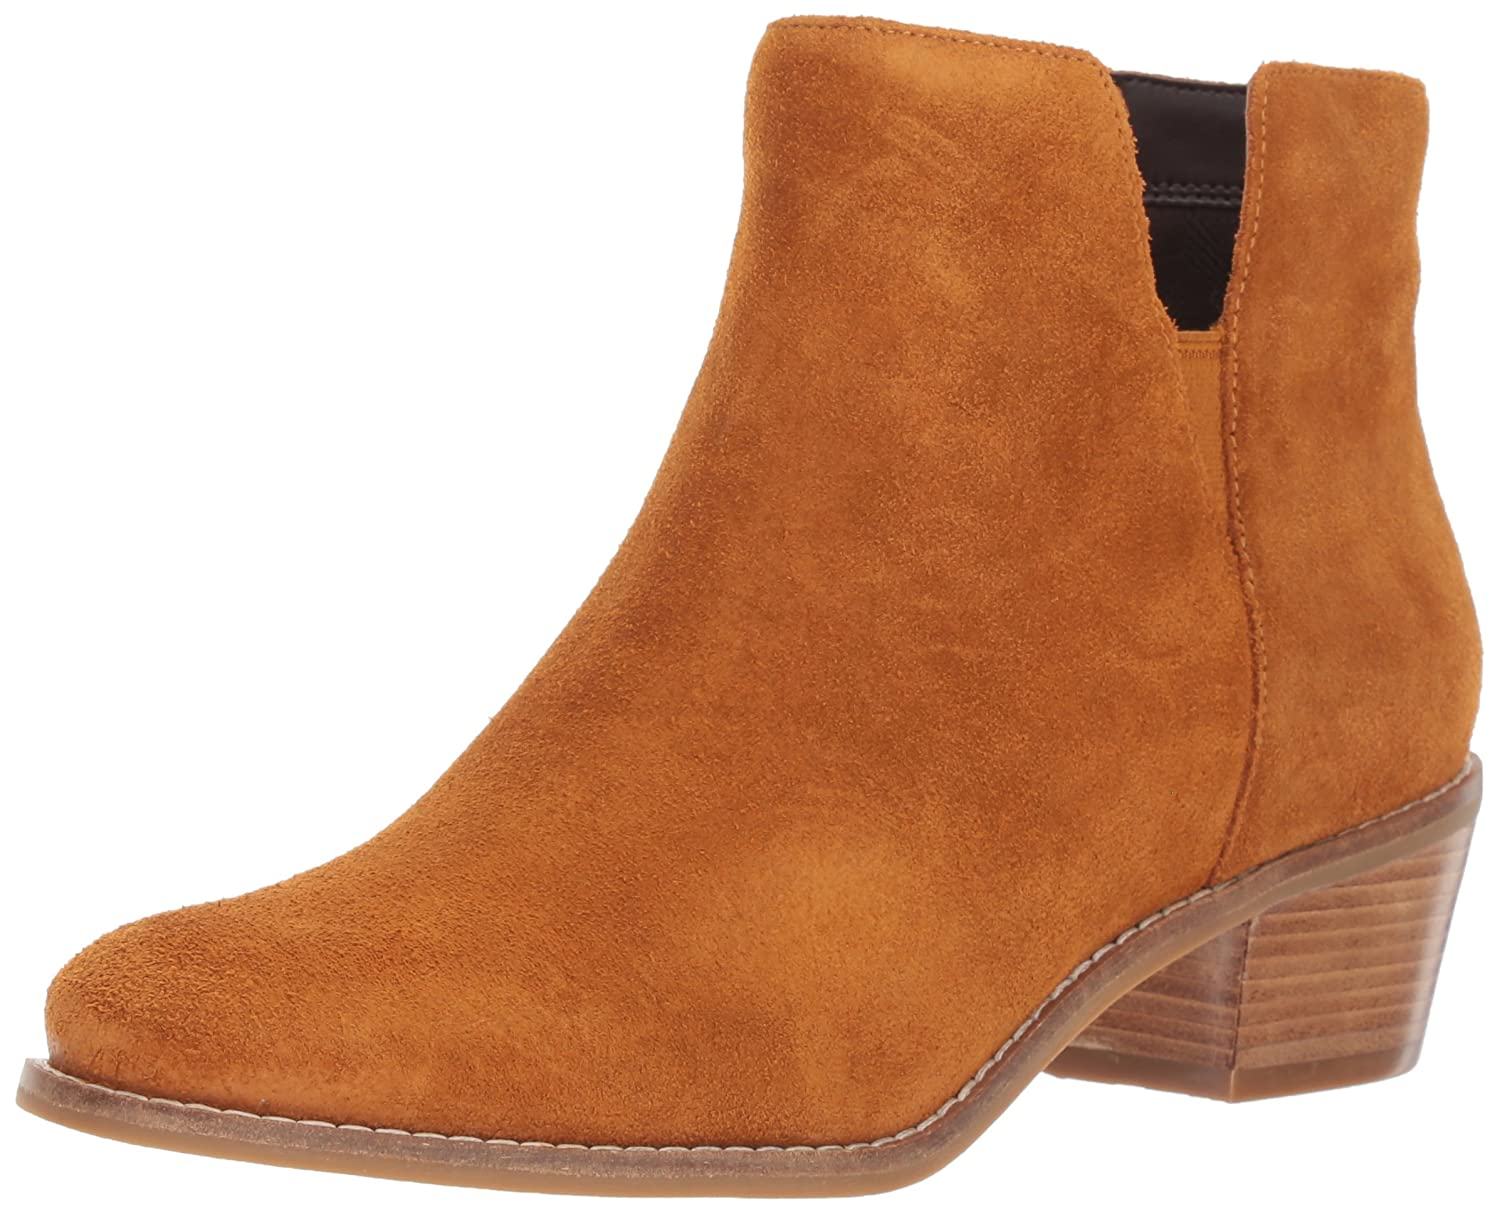 Cole Haan Women's Abbot Ankle Boot B01N4REZP7 7.5 C US|Cathay Spice